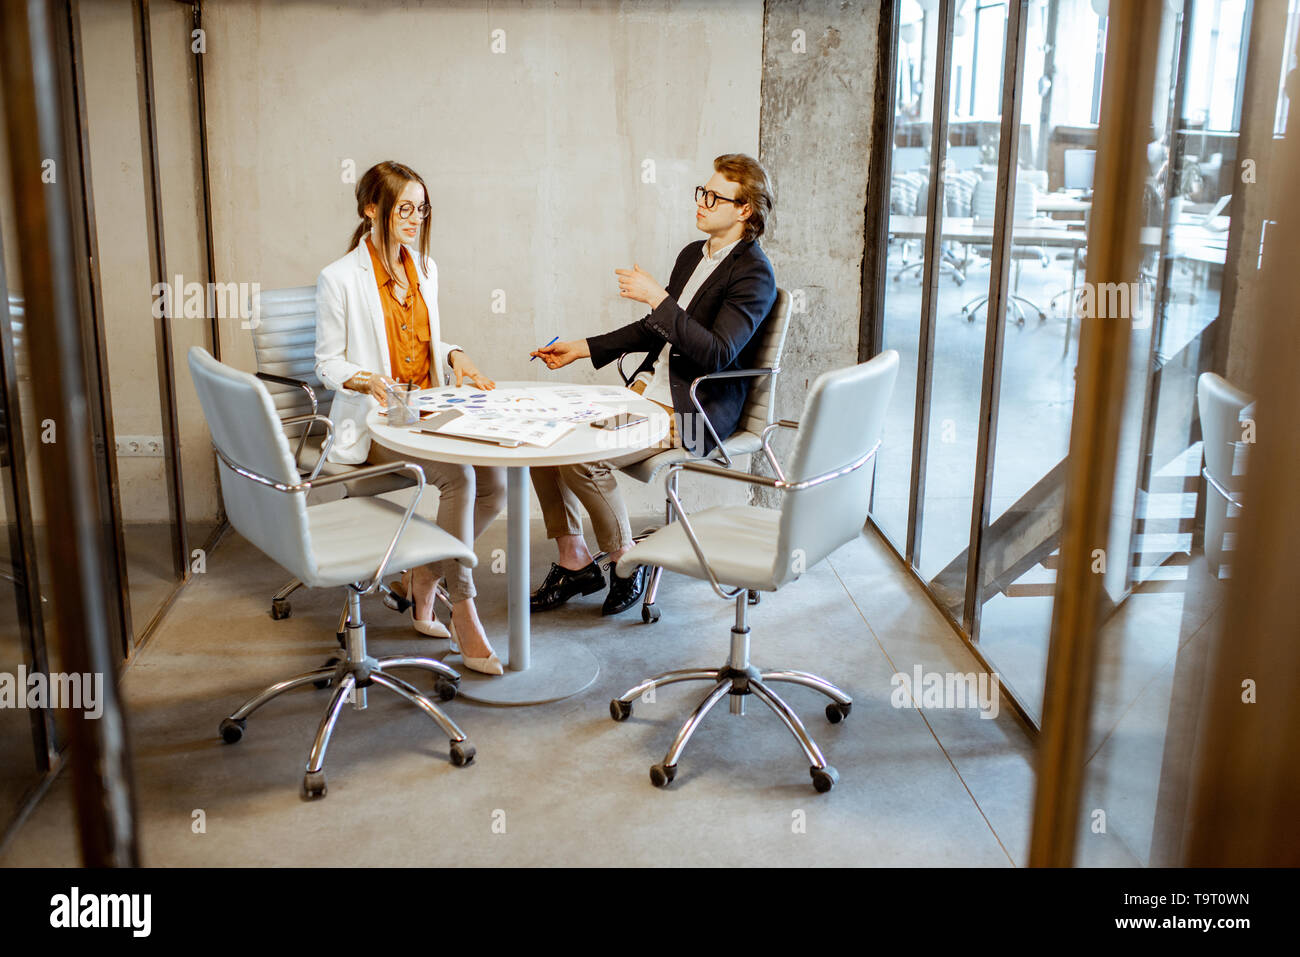 Young Man And Woman Having A Business Conversation During The Small Conference Sitting At The Round Table In The Meeting Room Stock Photo Alamy